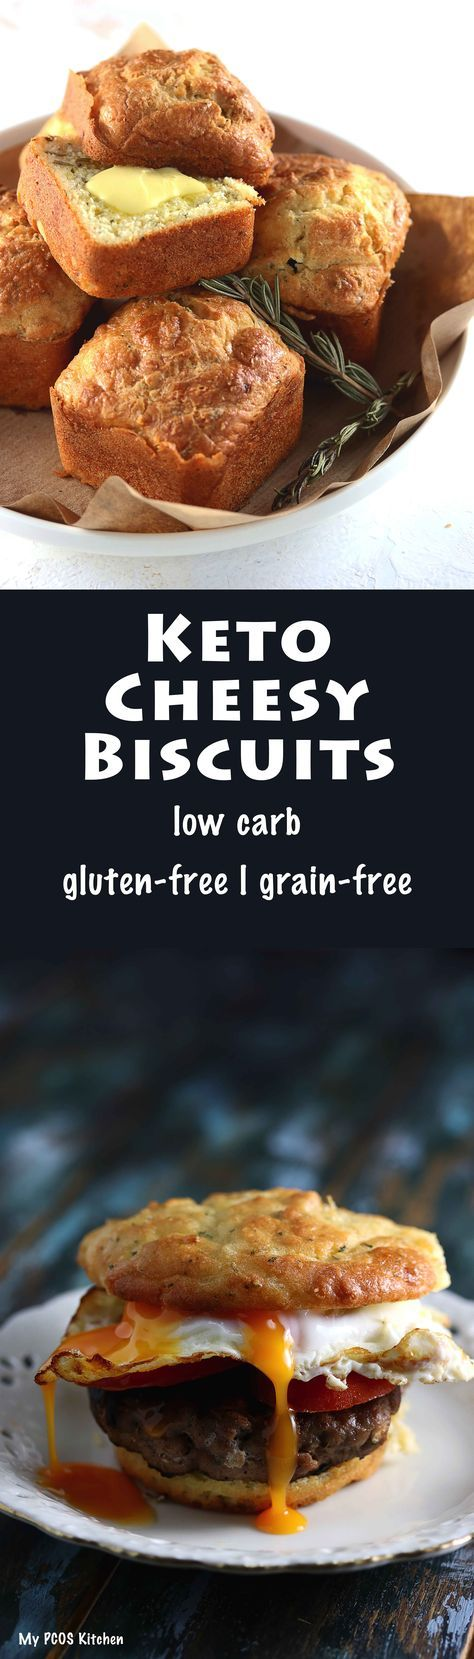 Keto Cheesy Biscuits - These low carb gluten-free biscuits are made with almond flour, sour cream and cheese! They are perfect for breakfast or a delicious snack!